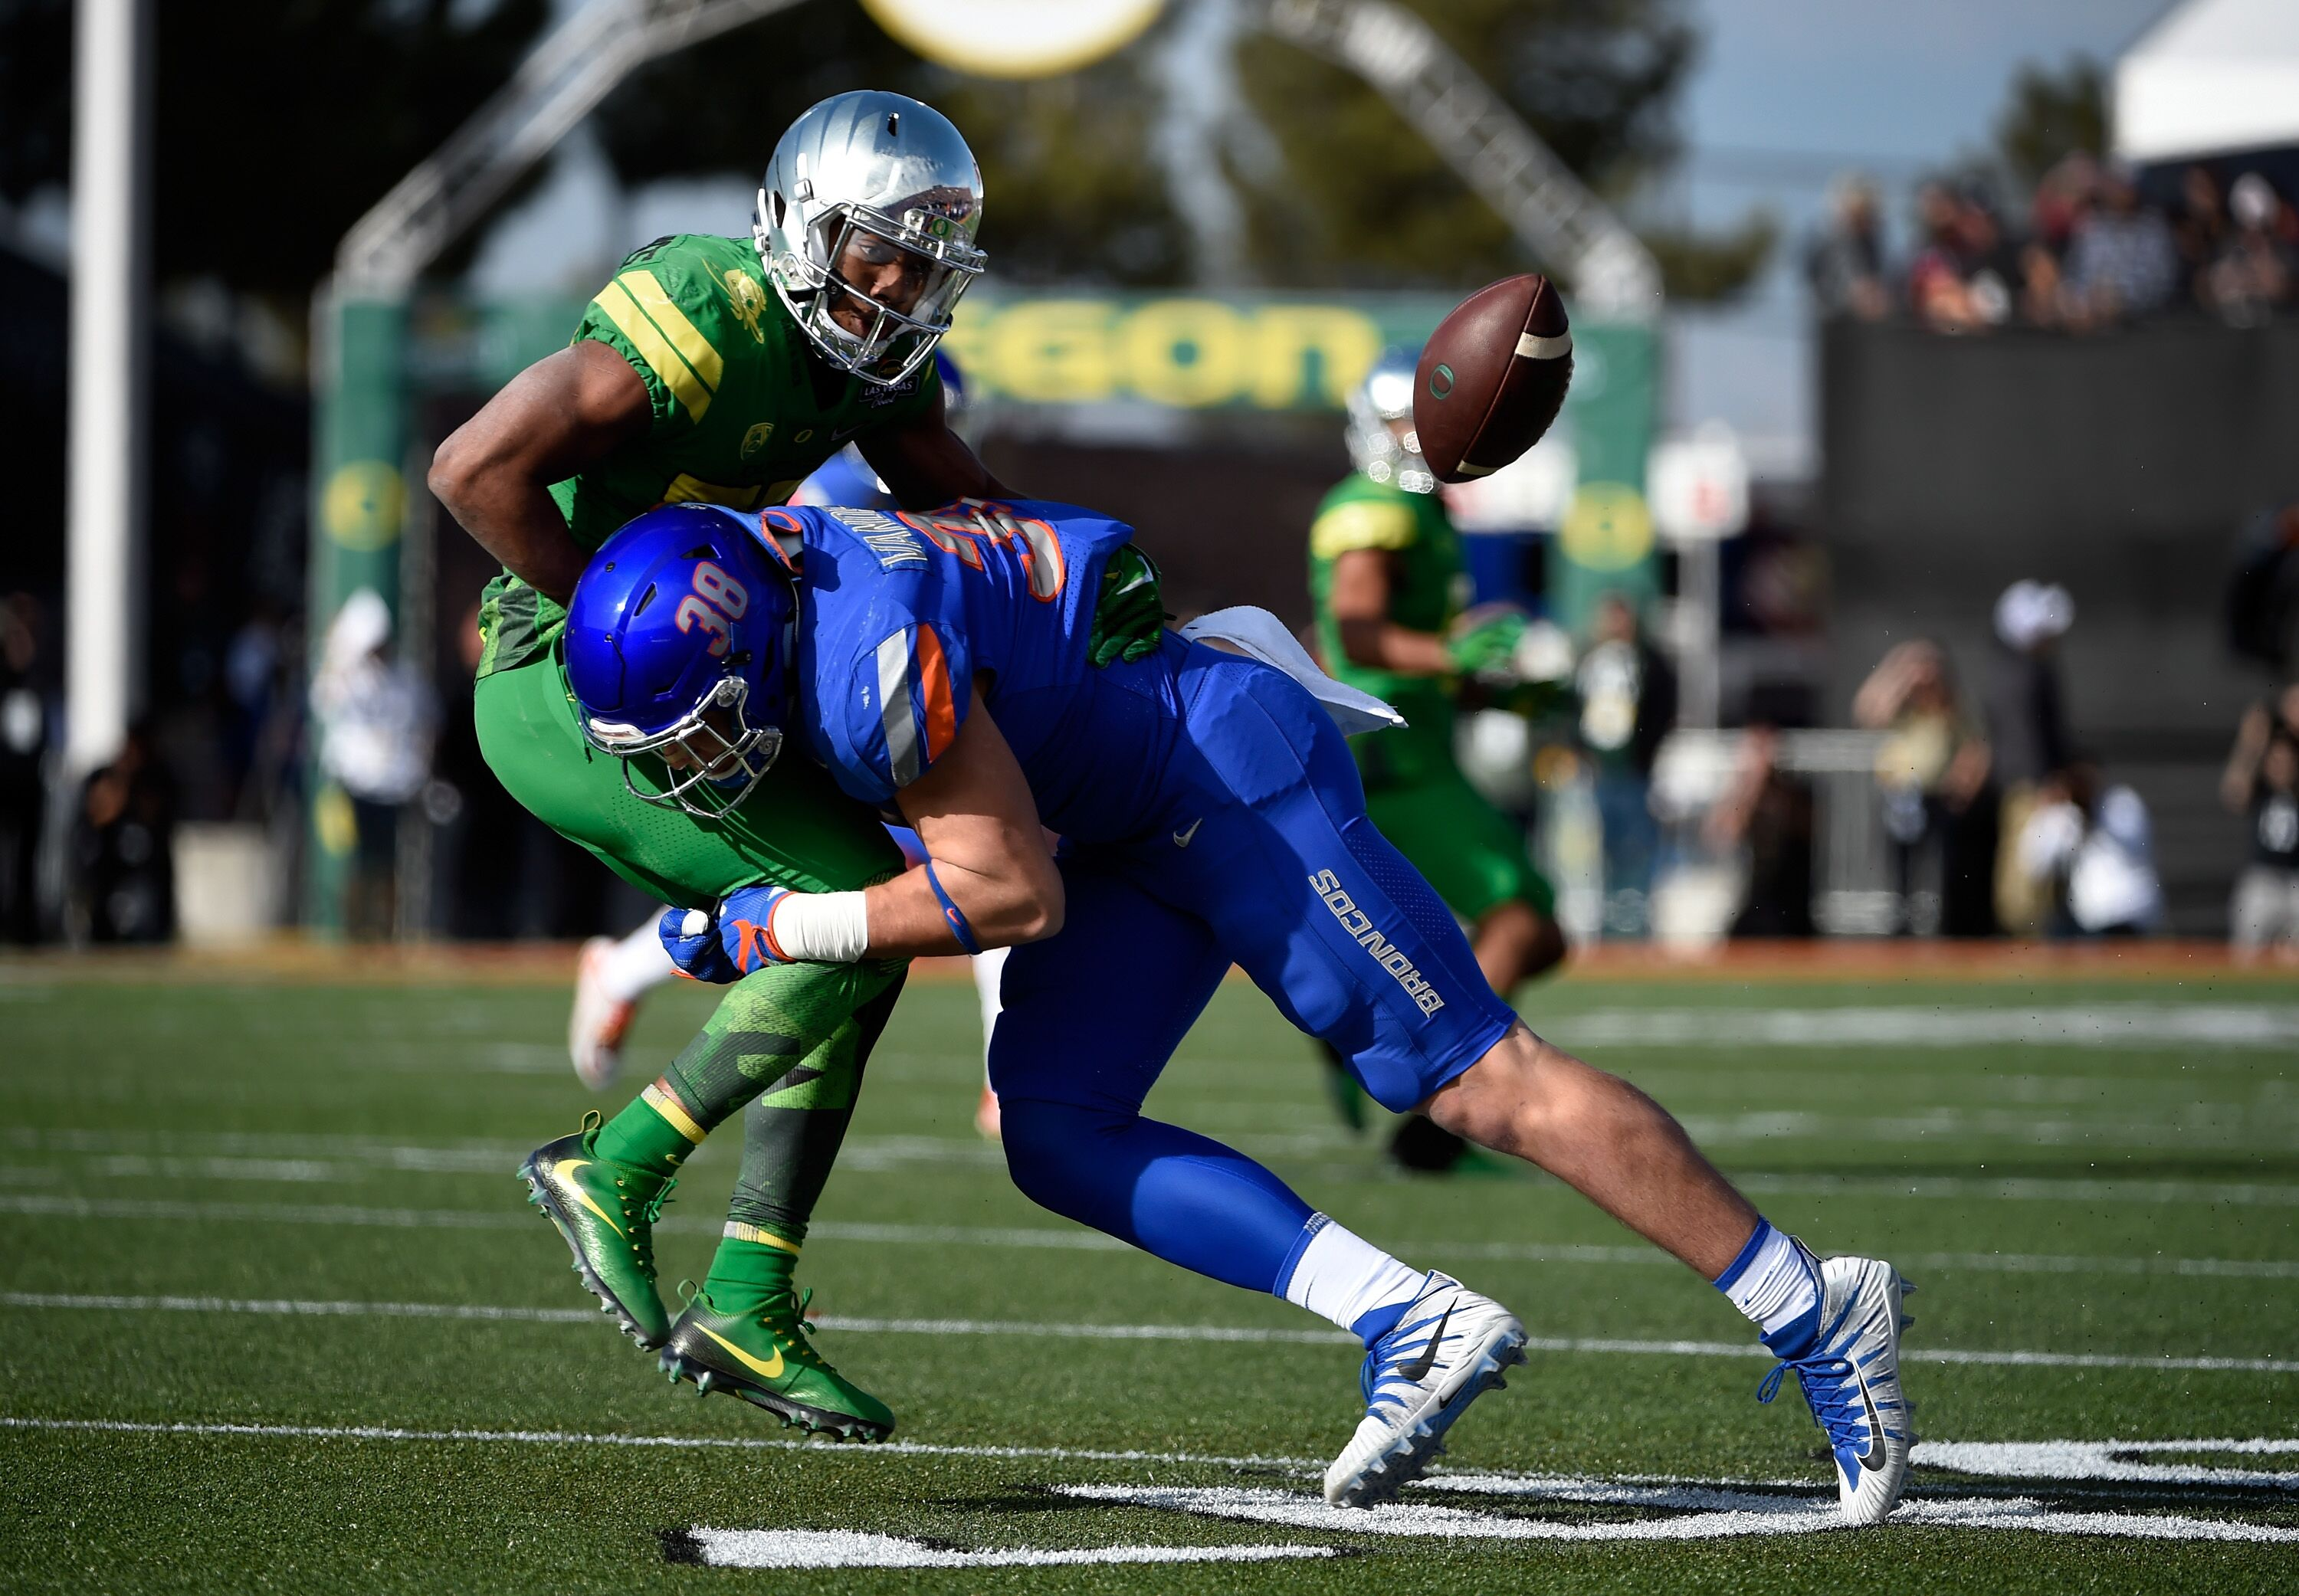 wholesale dealer b598f c278e Dallas Cowboys 2018 draft profile: Leighton Vander Esch